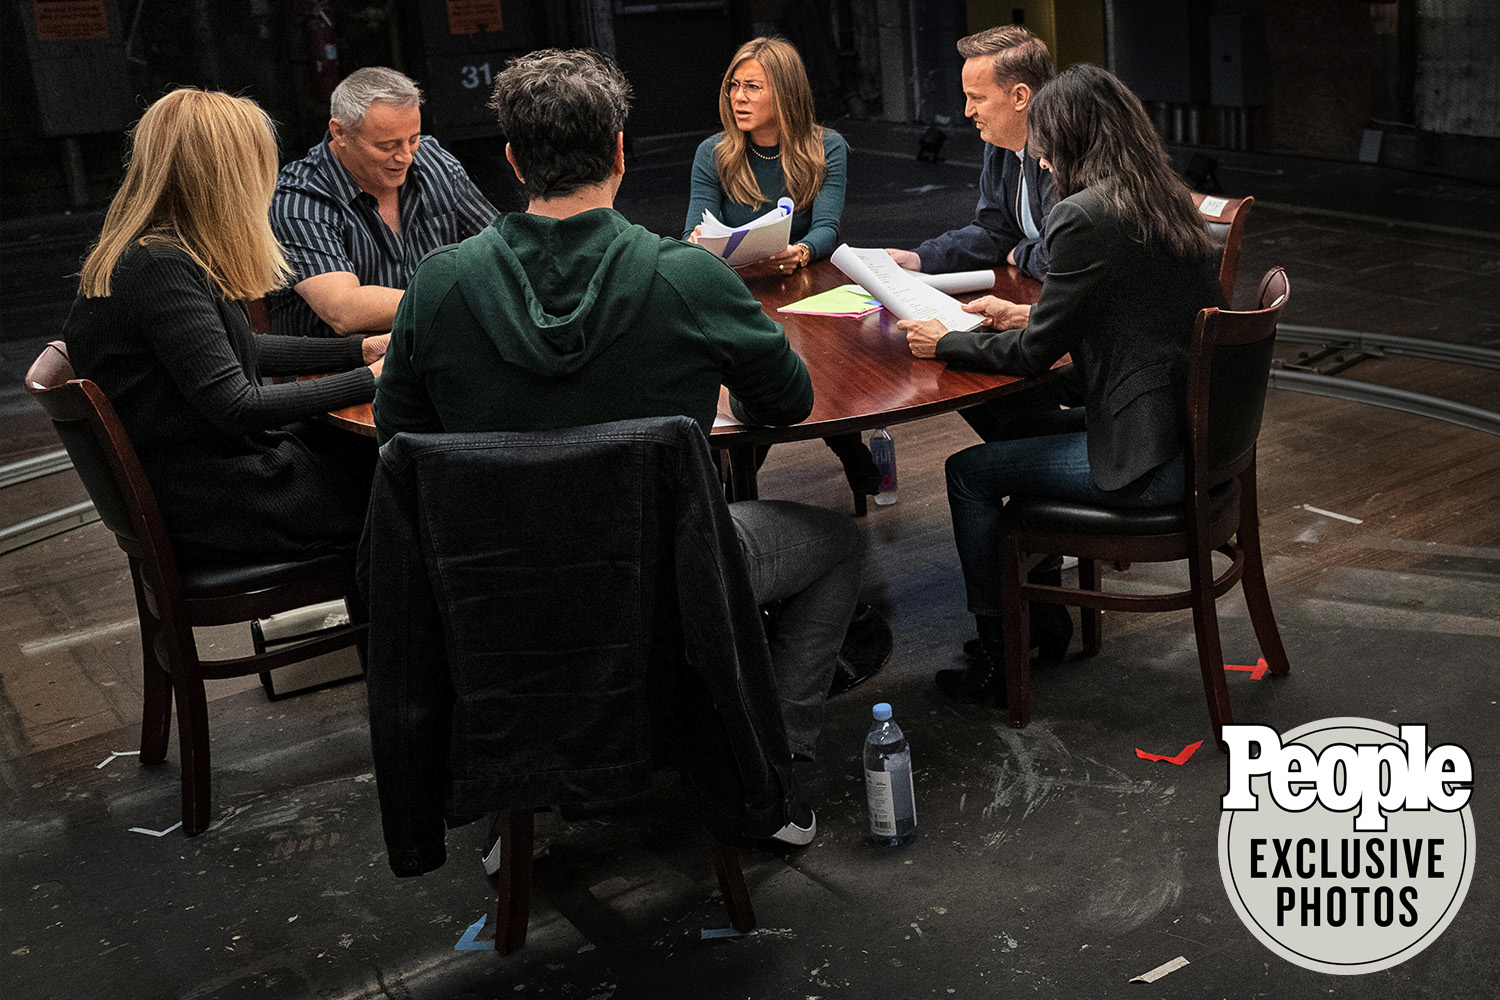 friends reunion table read fresh pics released online